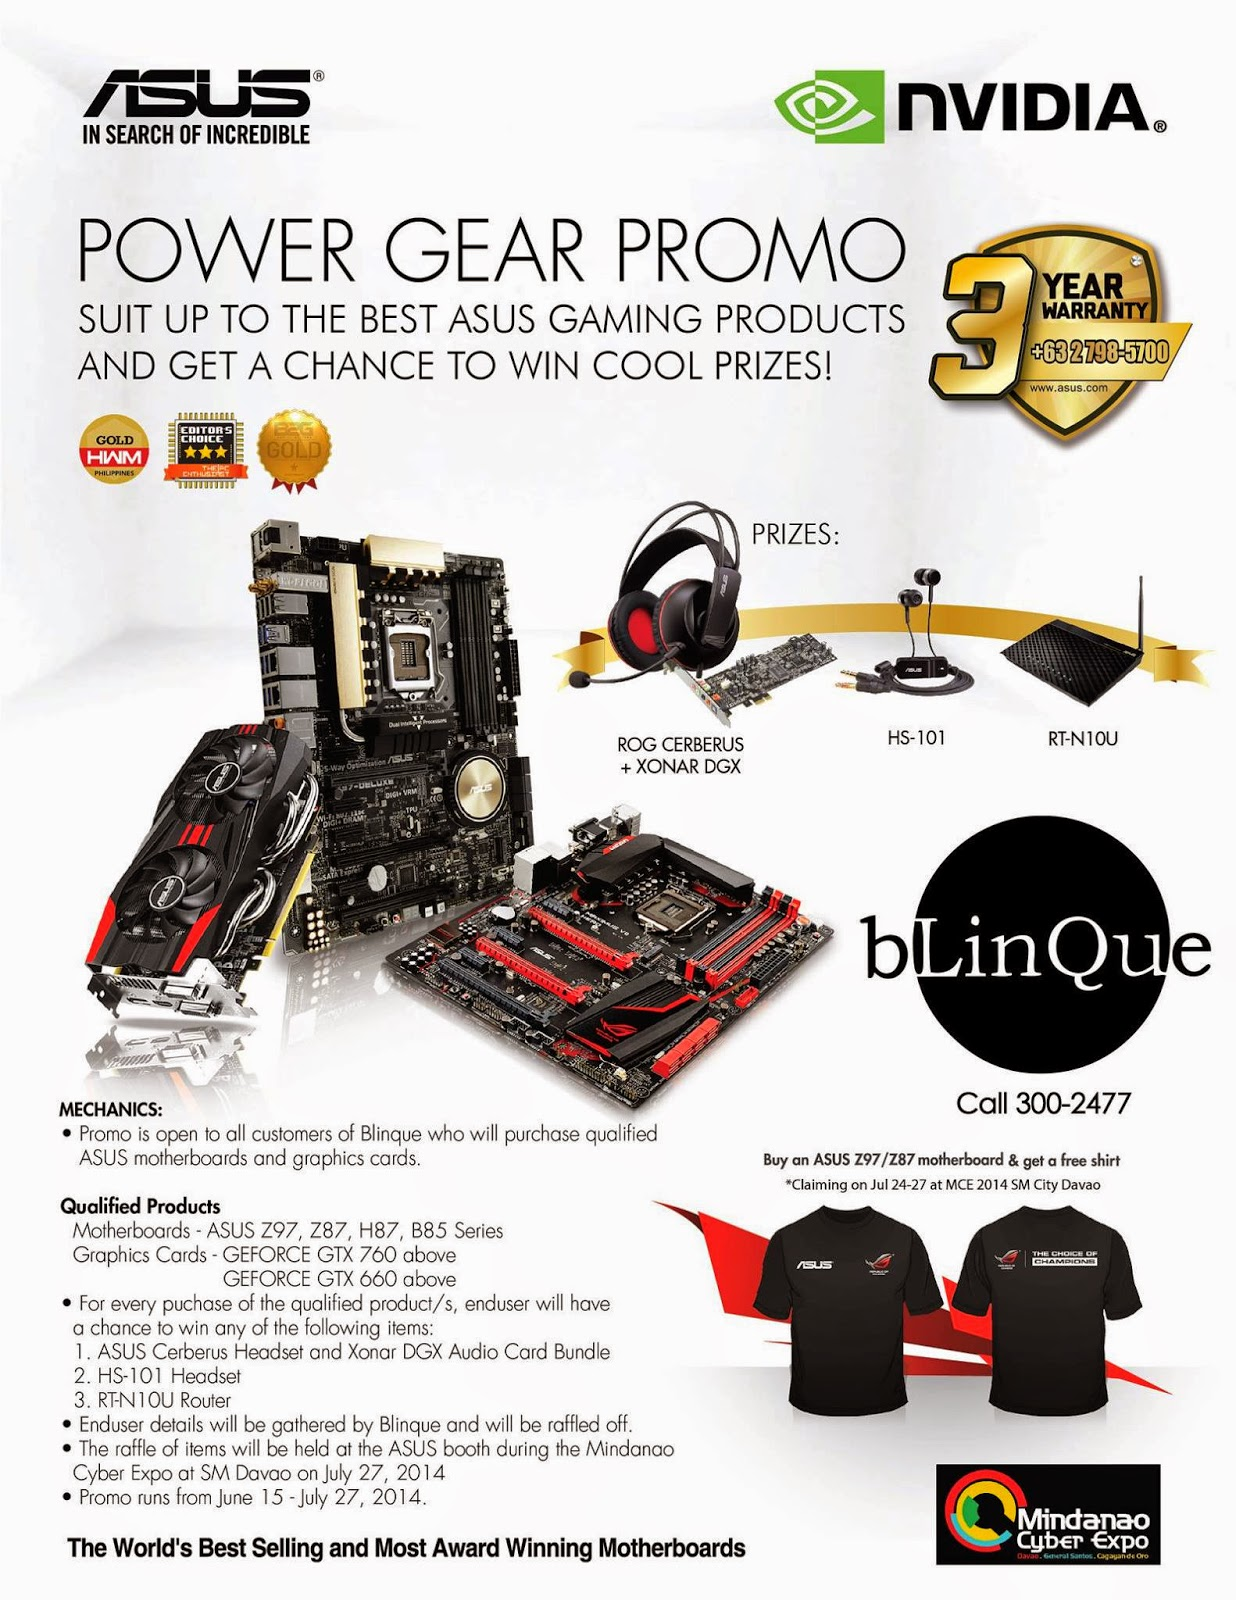 Buy ASUS motherboards and graphics card and win prizes - The